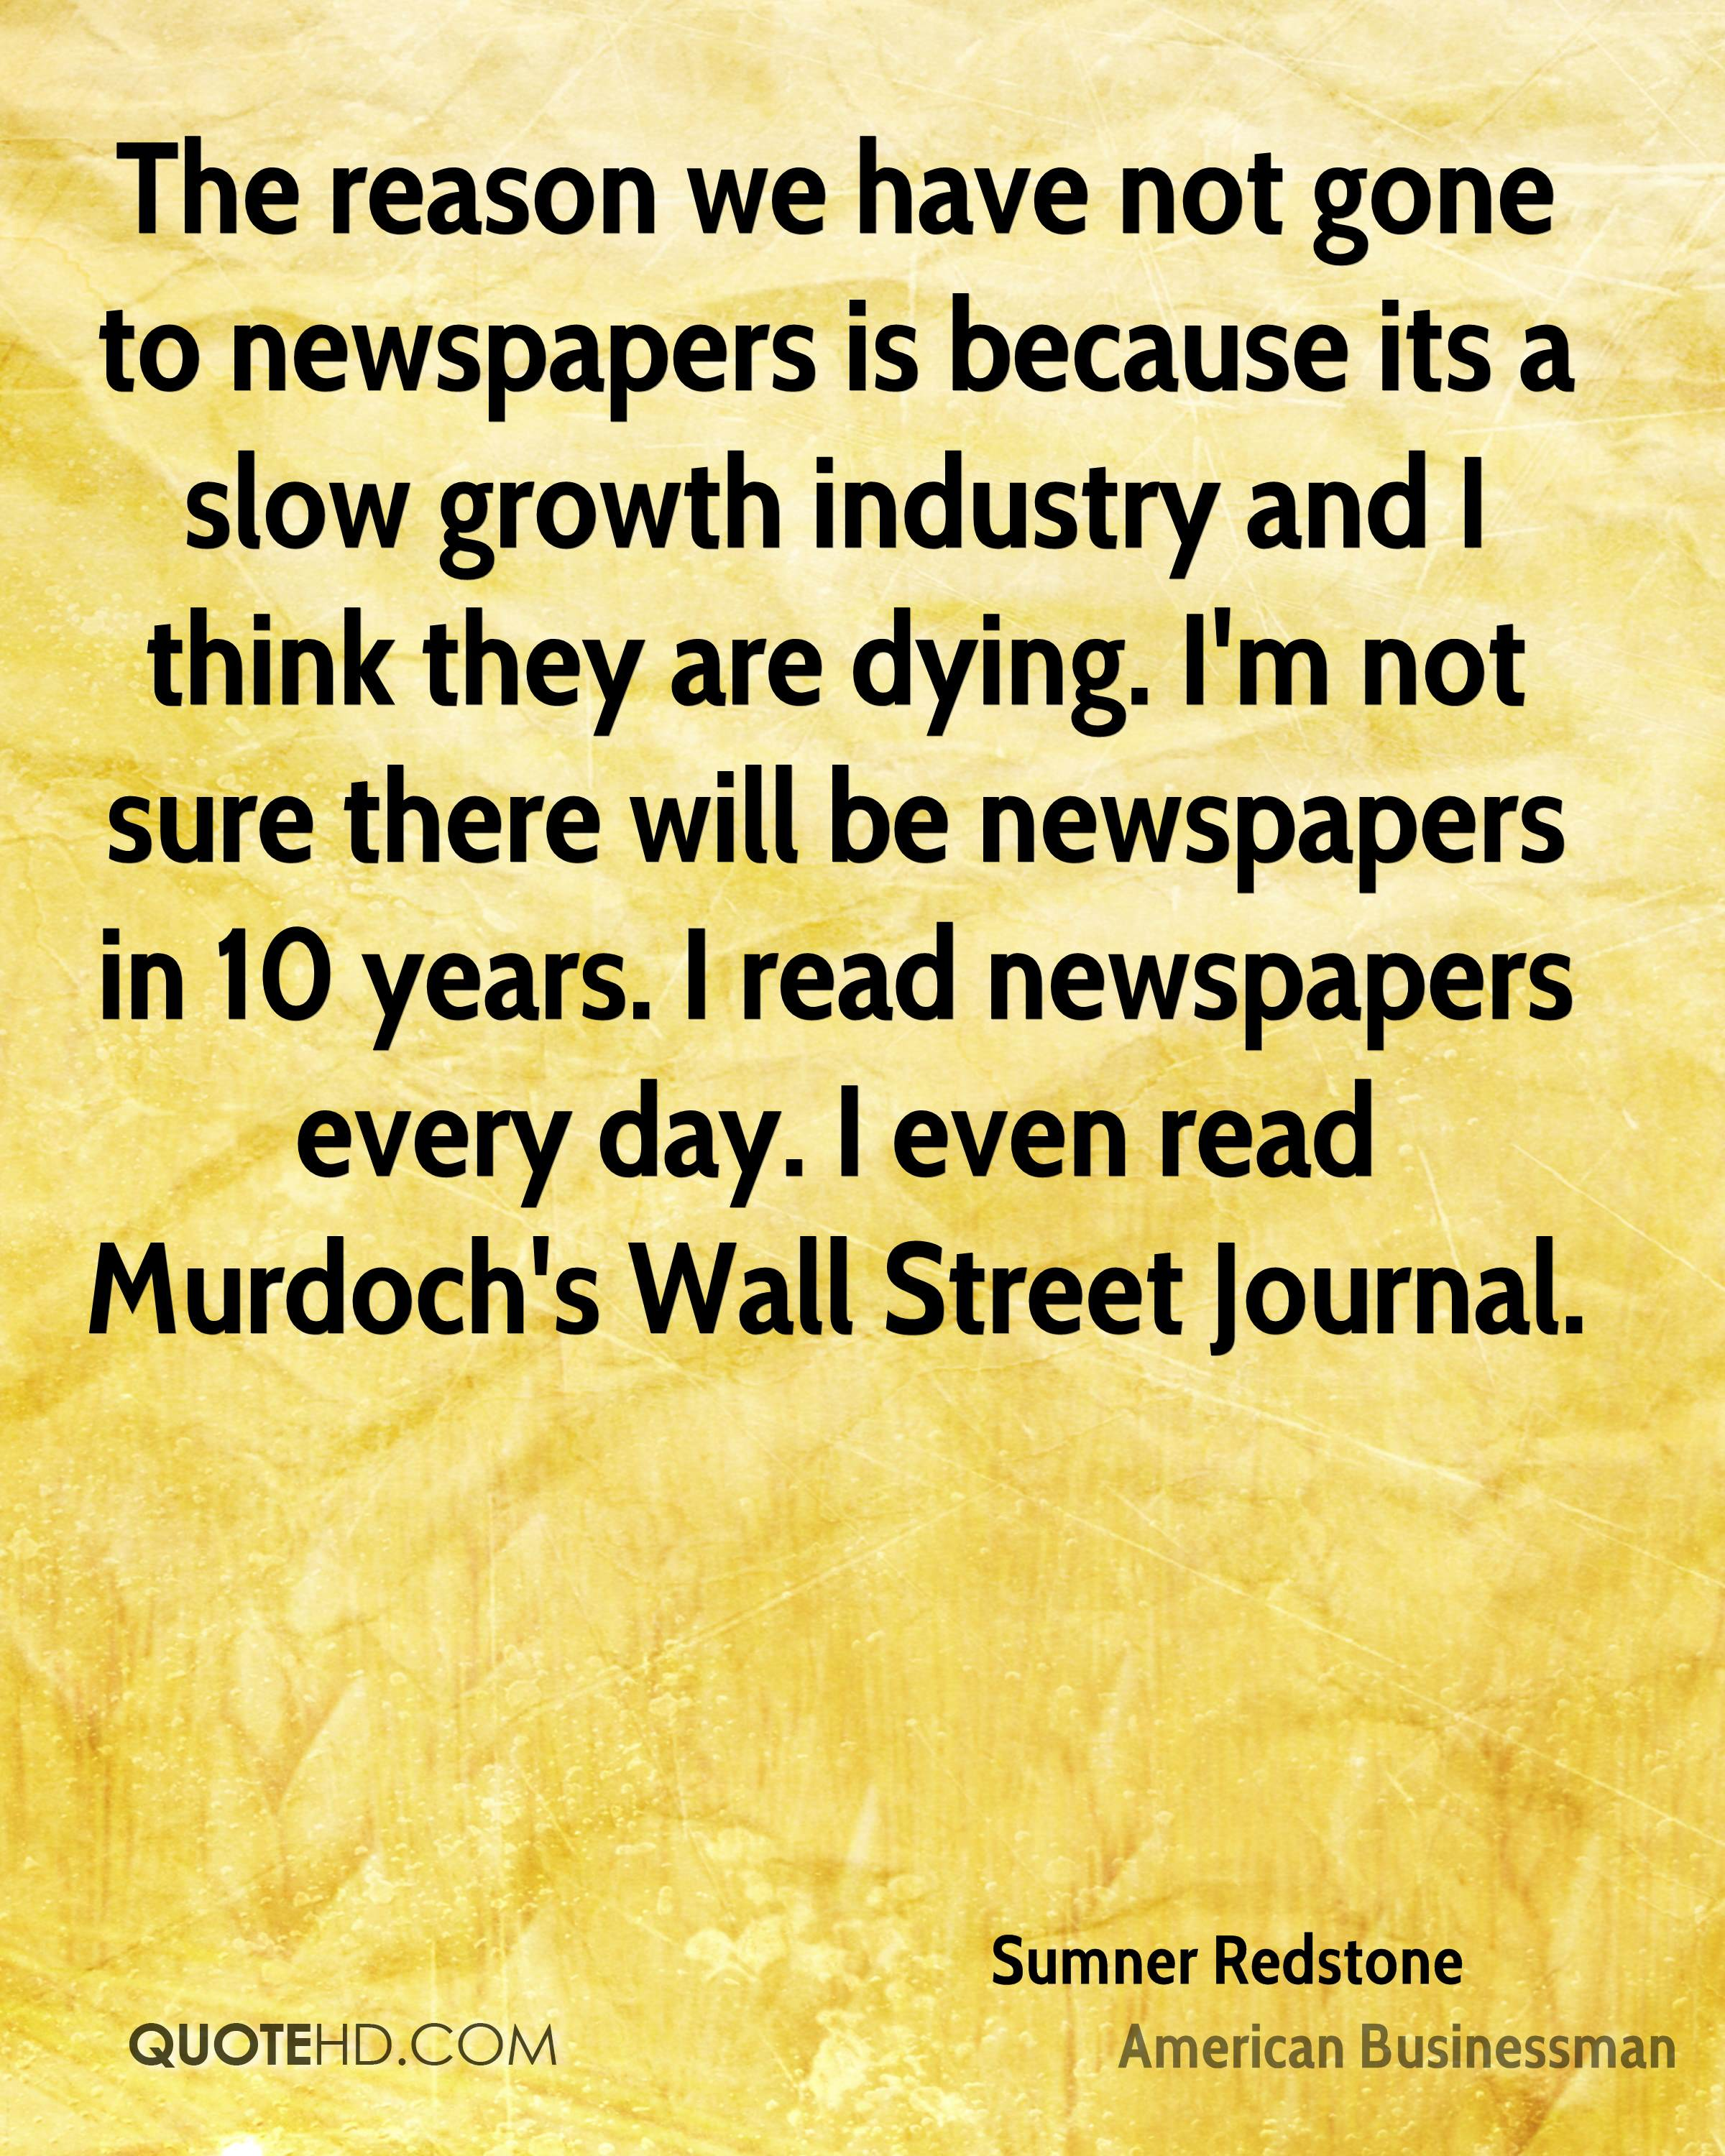 The reason we have not gone to newspapers is because its a slow growth industry and I think they are dying. I'm not sure there will be newspapers in 10 years. I read newspapers every day. I even read Murdoch's Wall Street Journal.